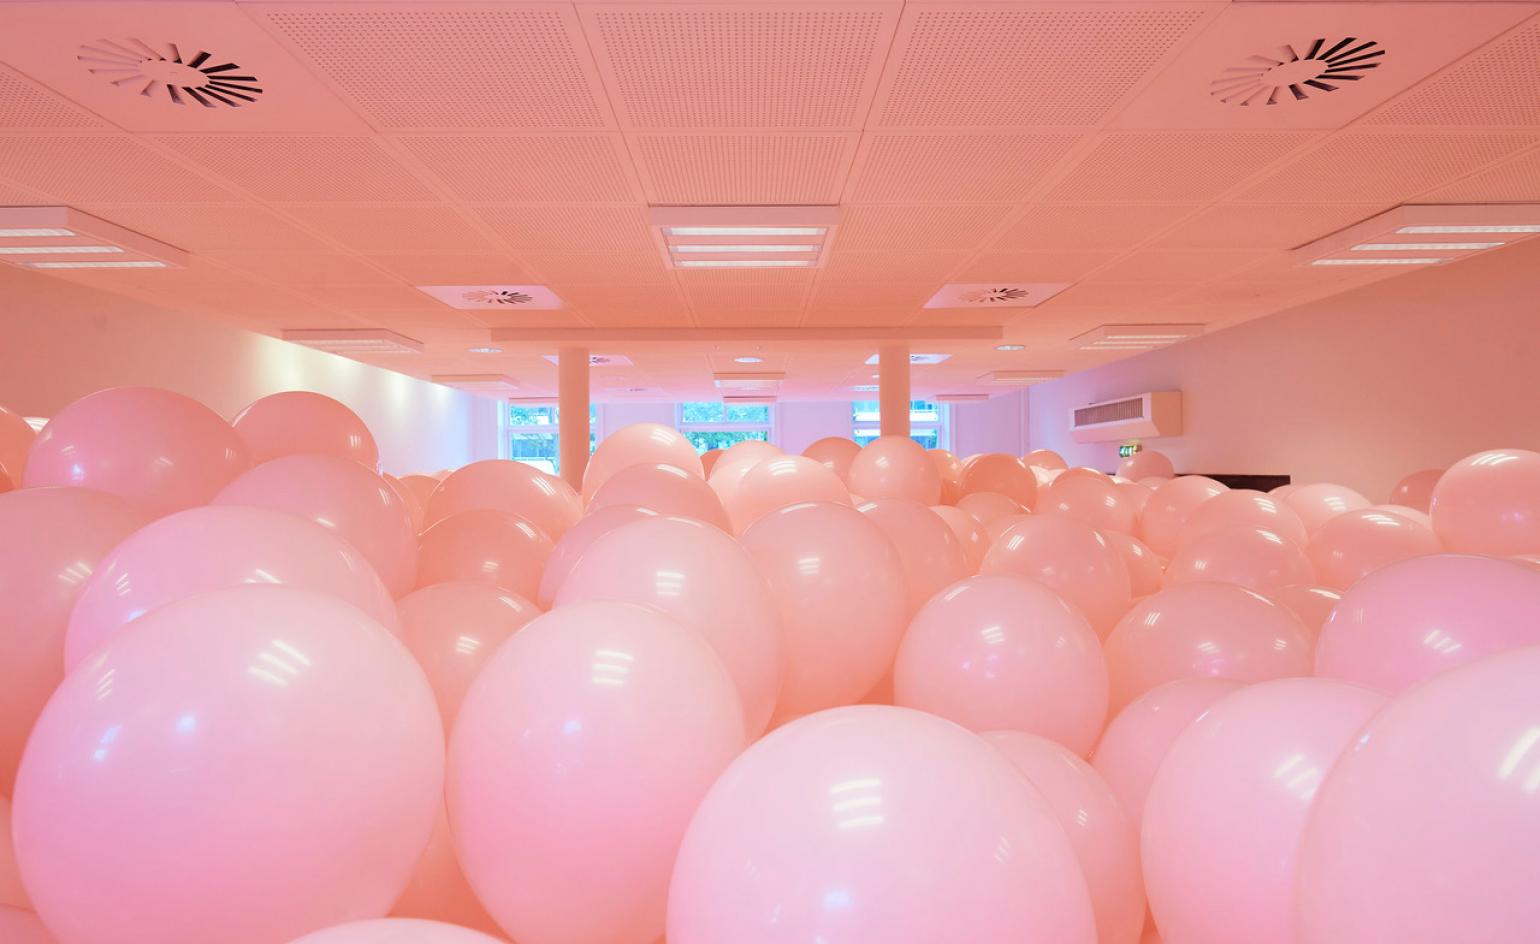 Martin Creed Fills Public Spaces In Denmark With Balloons